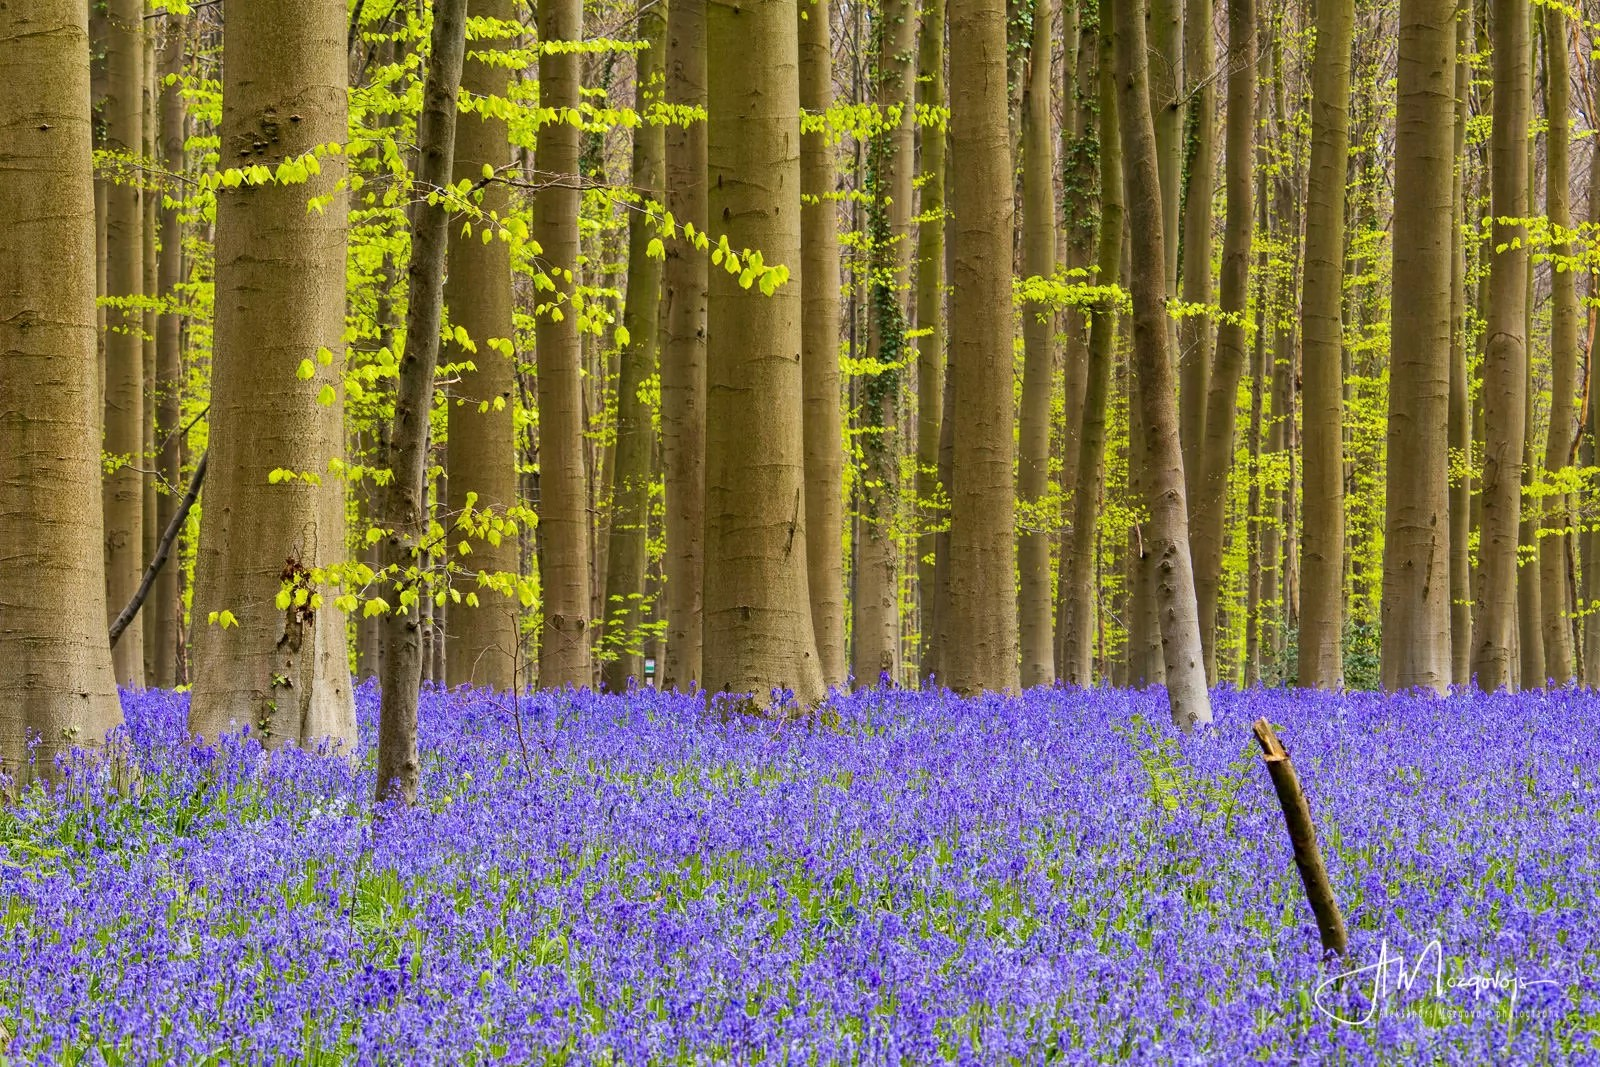 Blooming bluebells in Hallerbos are harder to photograph on an overcast day